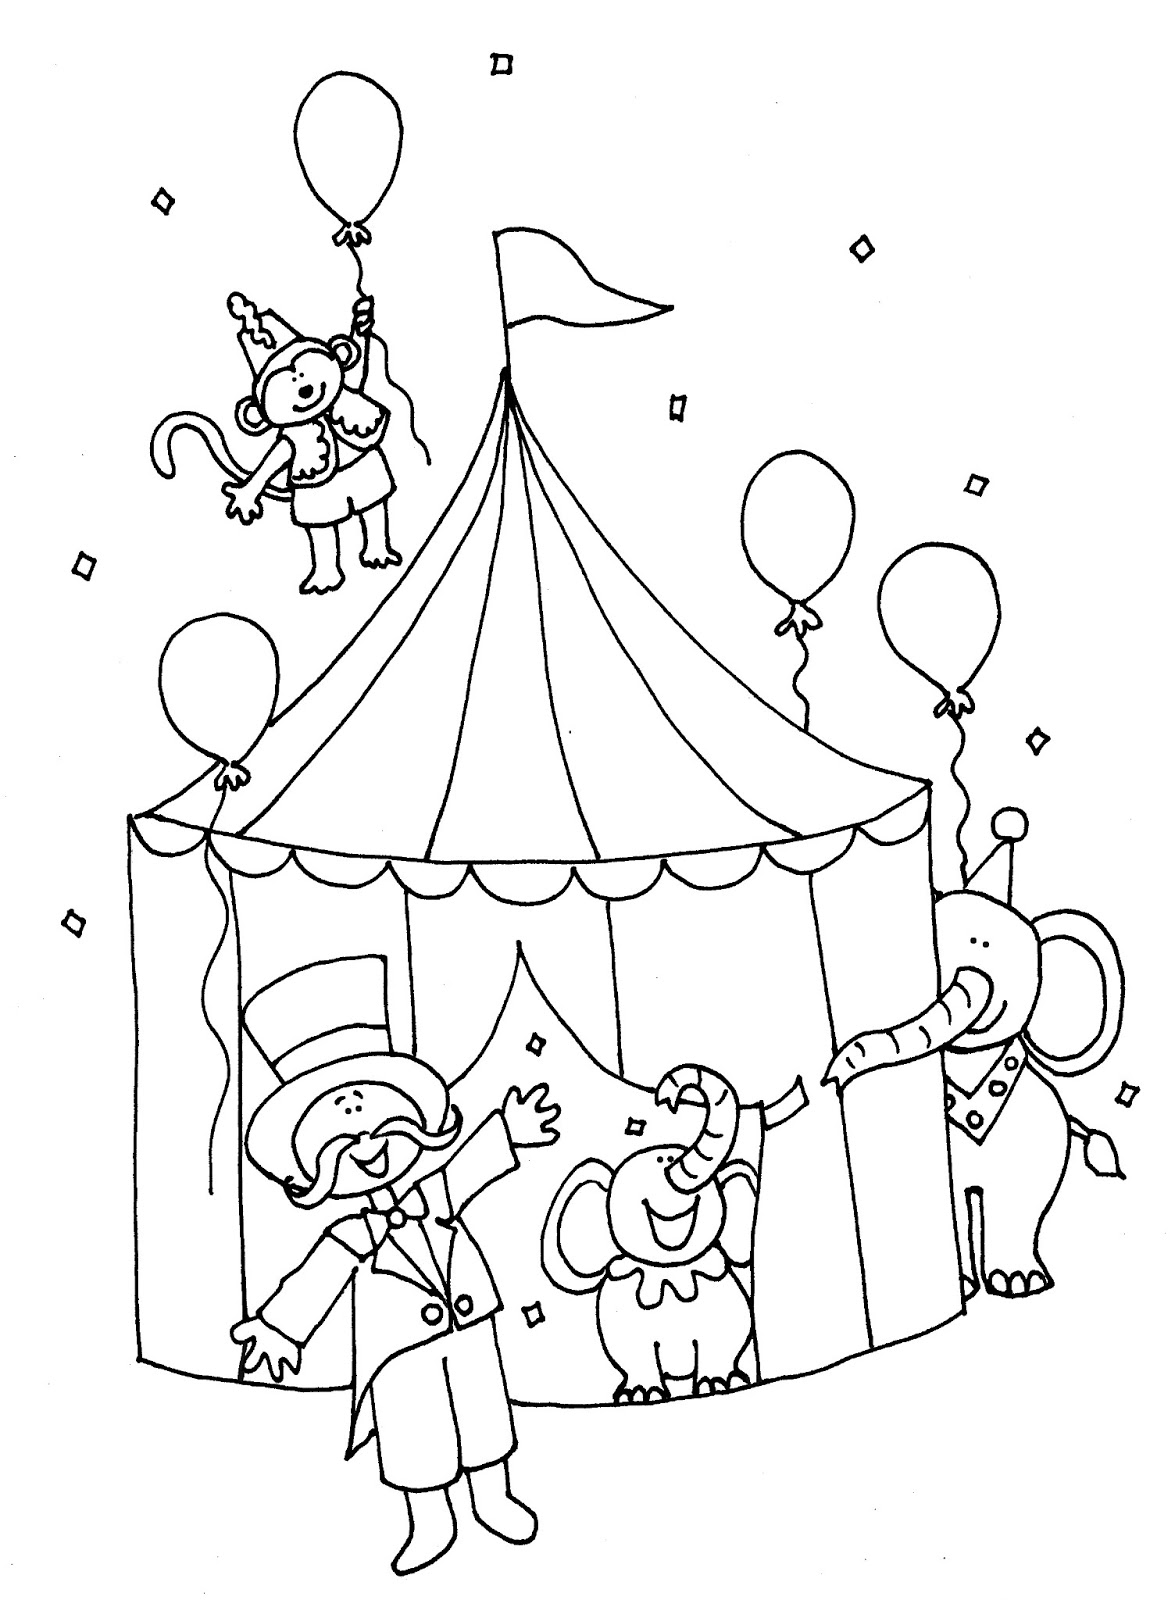 printable coloring pages circus | Free Dearie Dolls Digi Stamps: Big Top Circus color and B/W